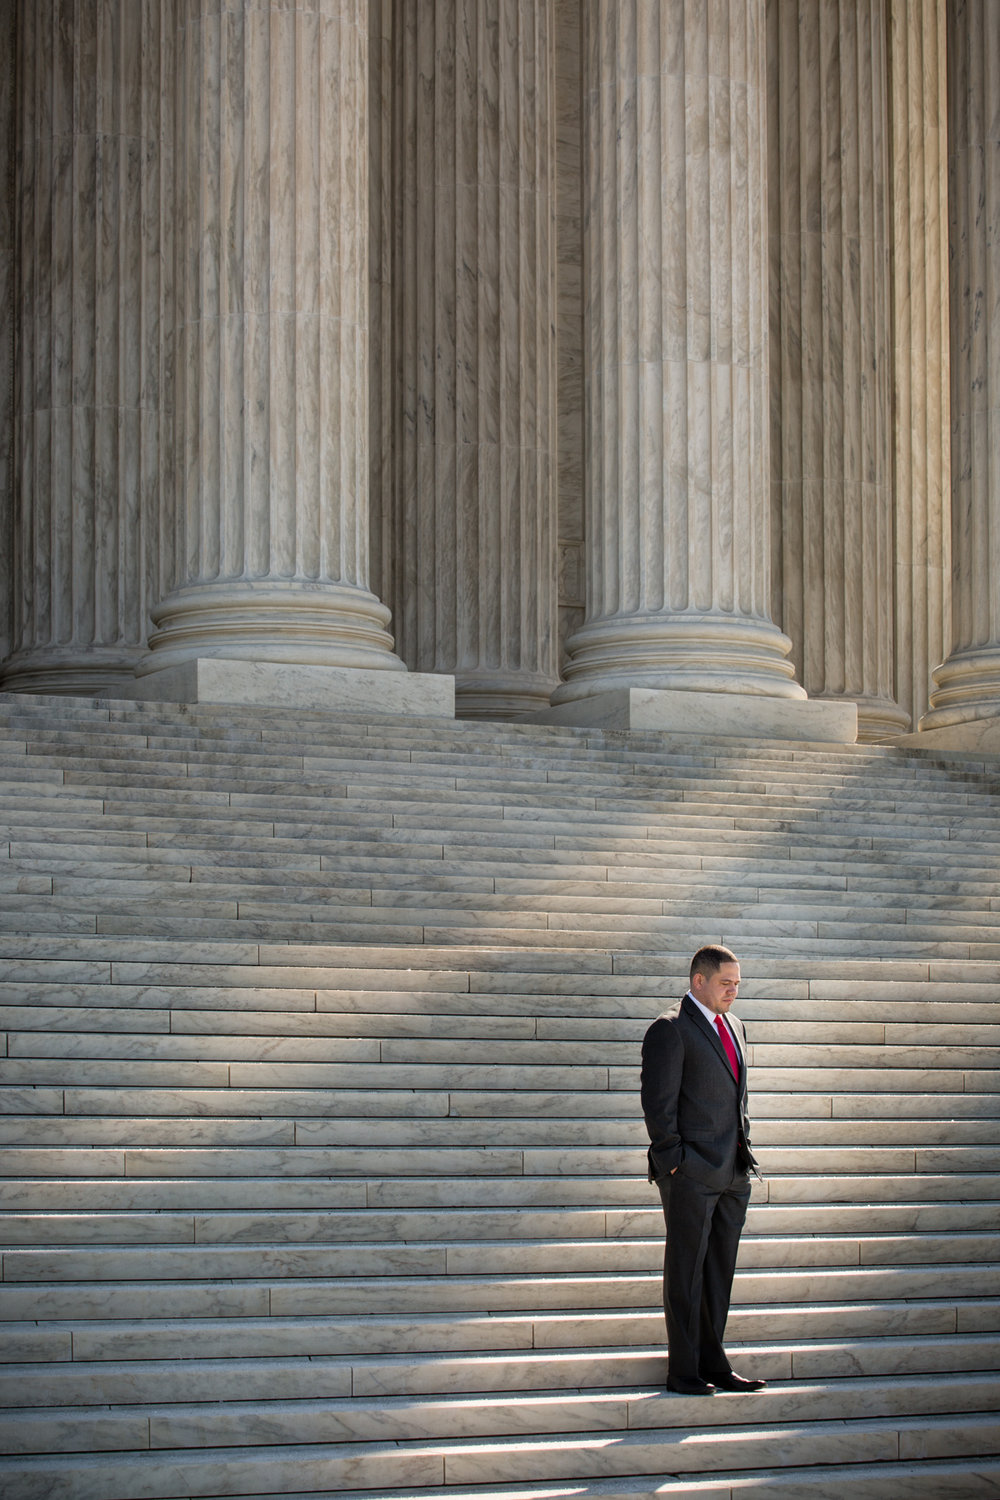 James Dold, Advocacy Director at the Campaign for Fair Sentencing of Youth in Washington, DC, on the steps of the Supreme Court.